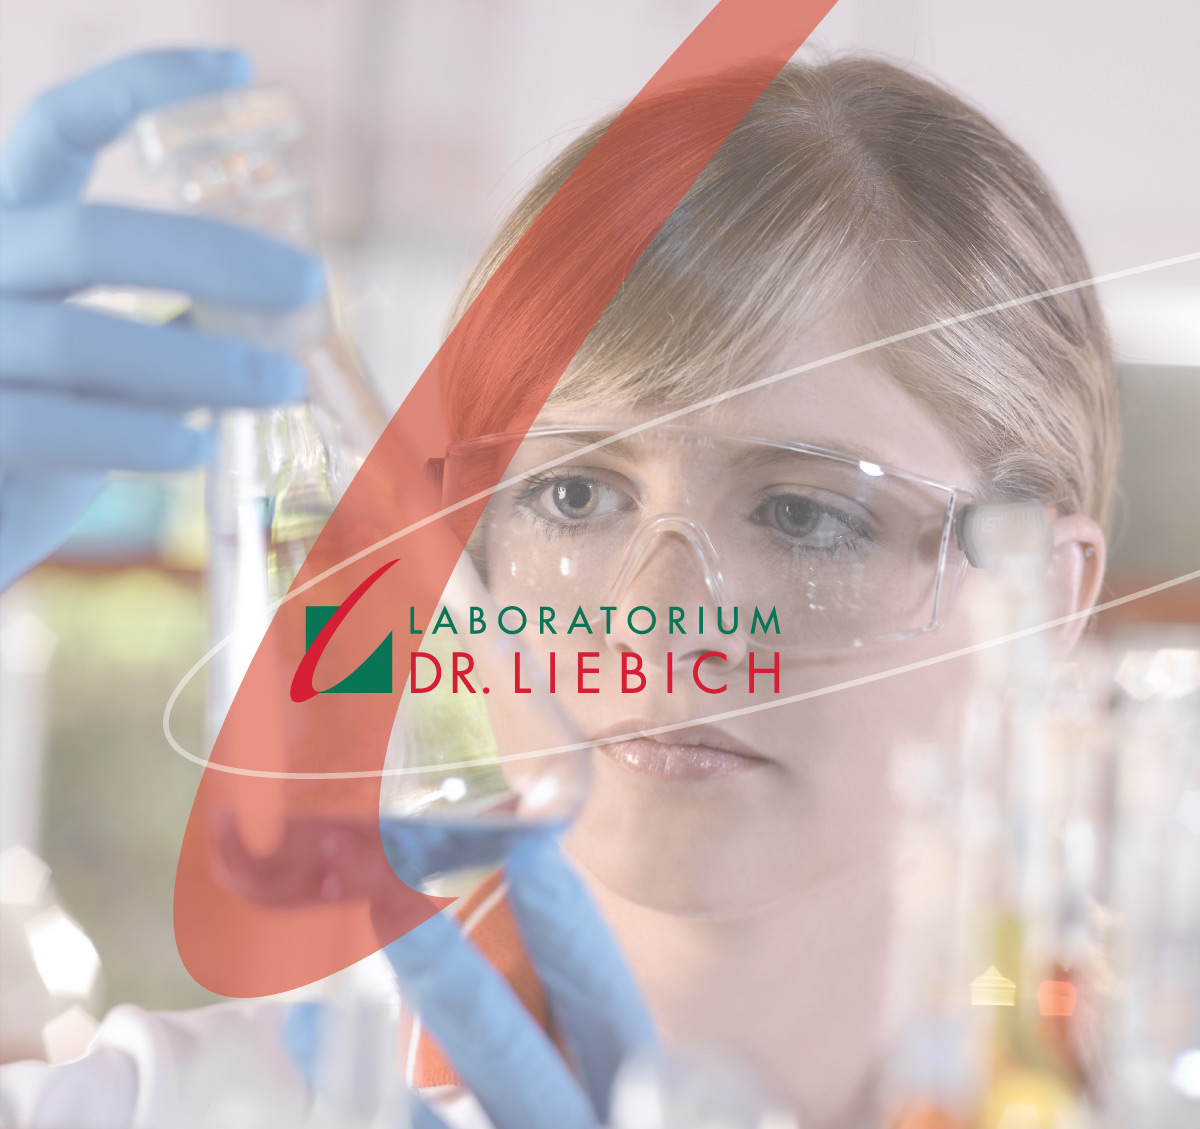 Laboratory staff checking the contents of a flask with the logo of Laboratorium Dr. Liebich on top